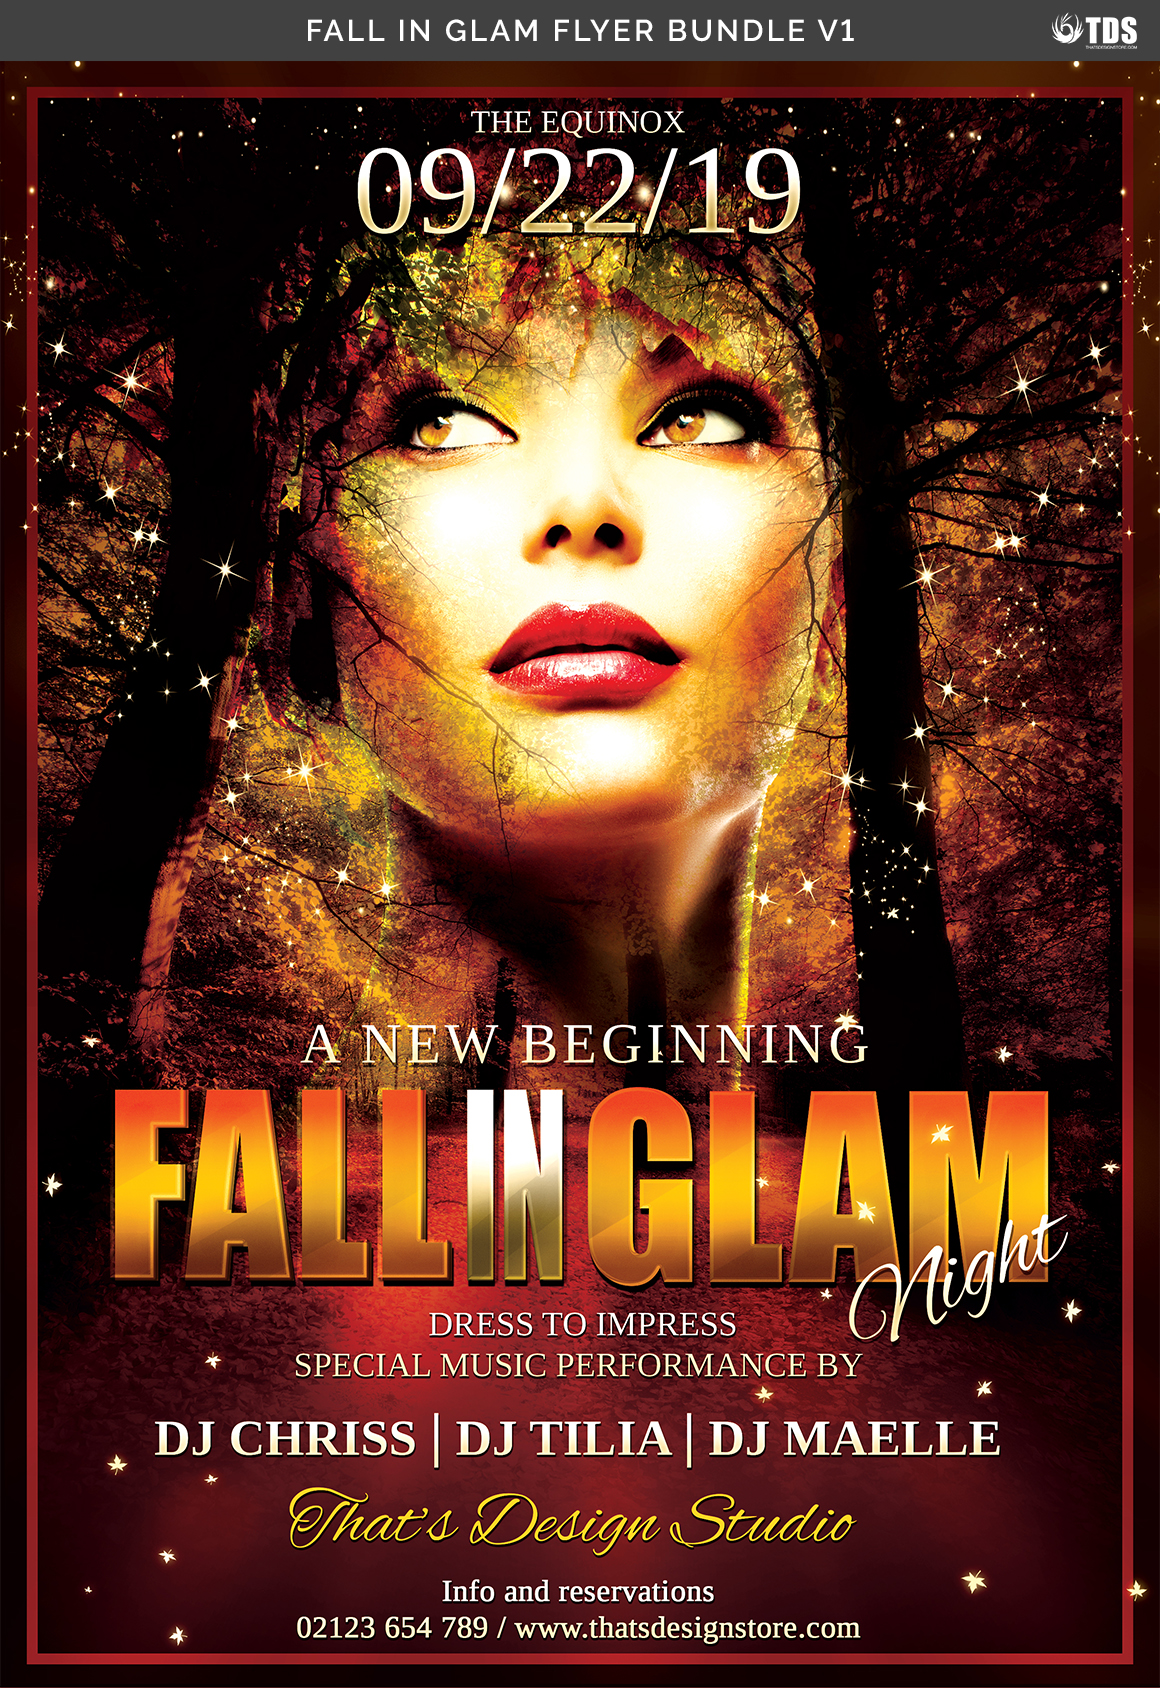 Fall in Glam Flyer Bundle V1 example image 10